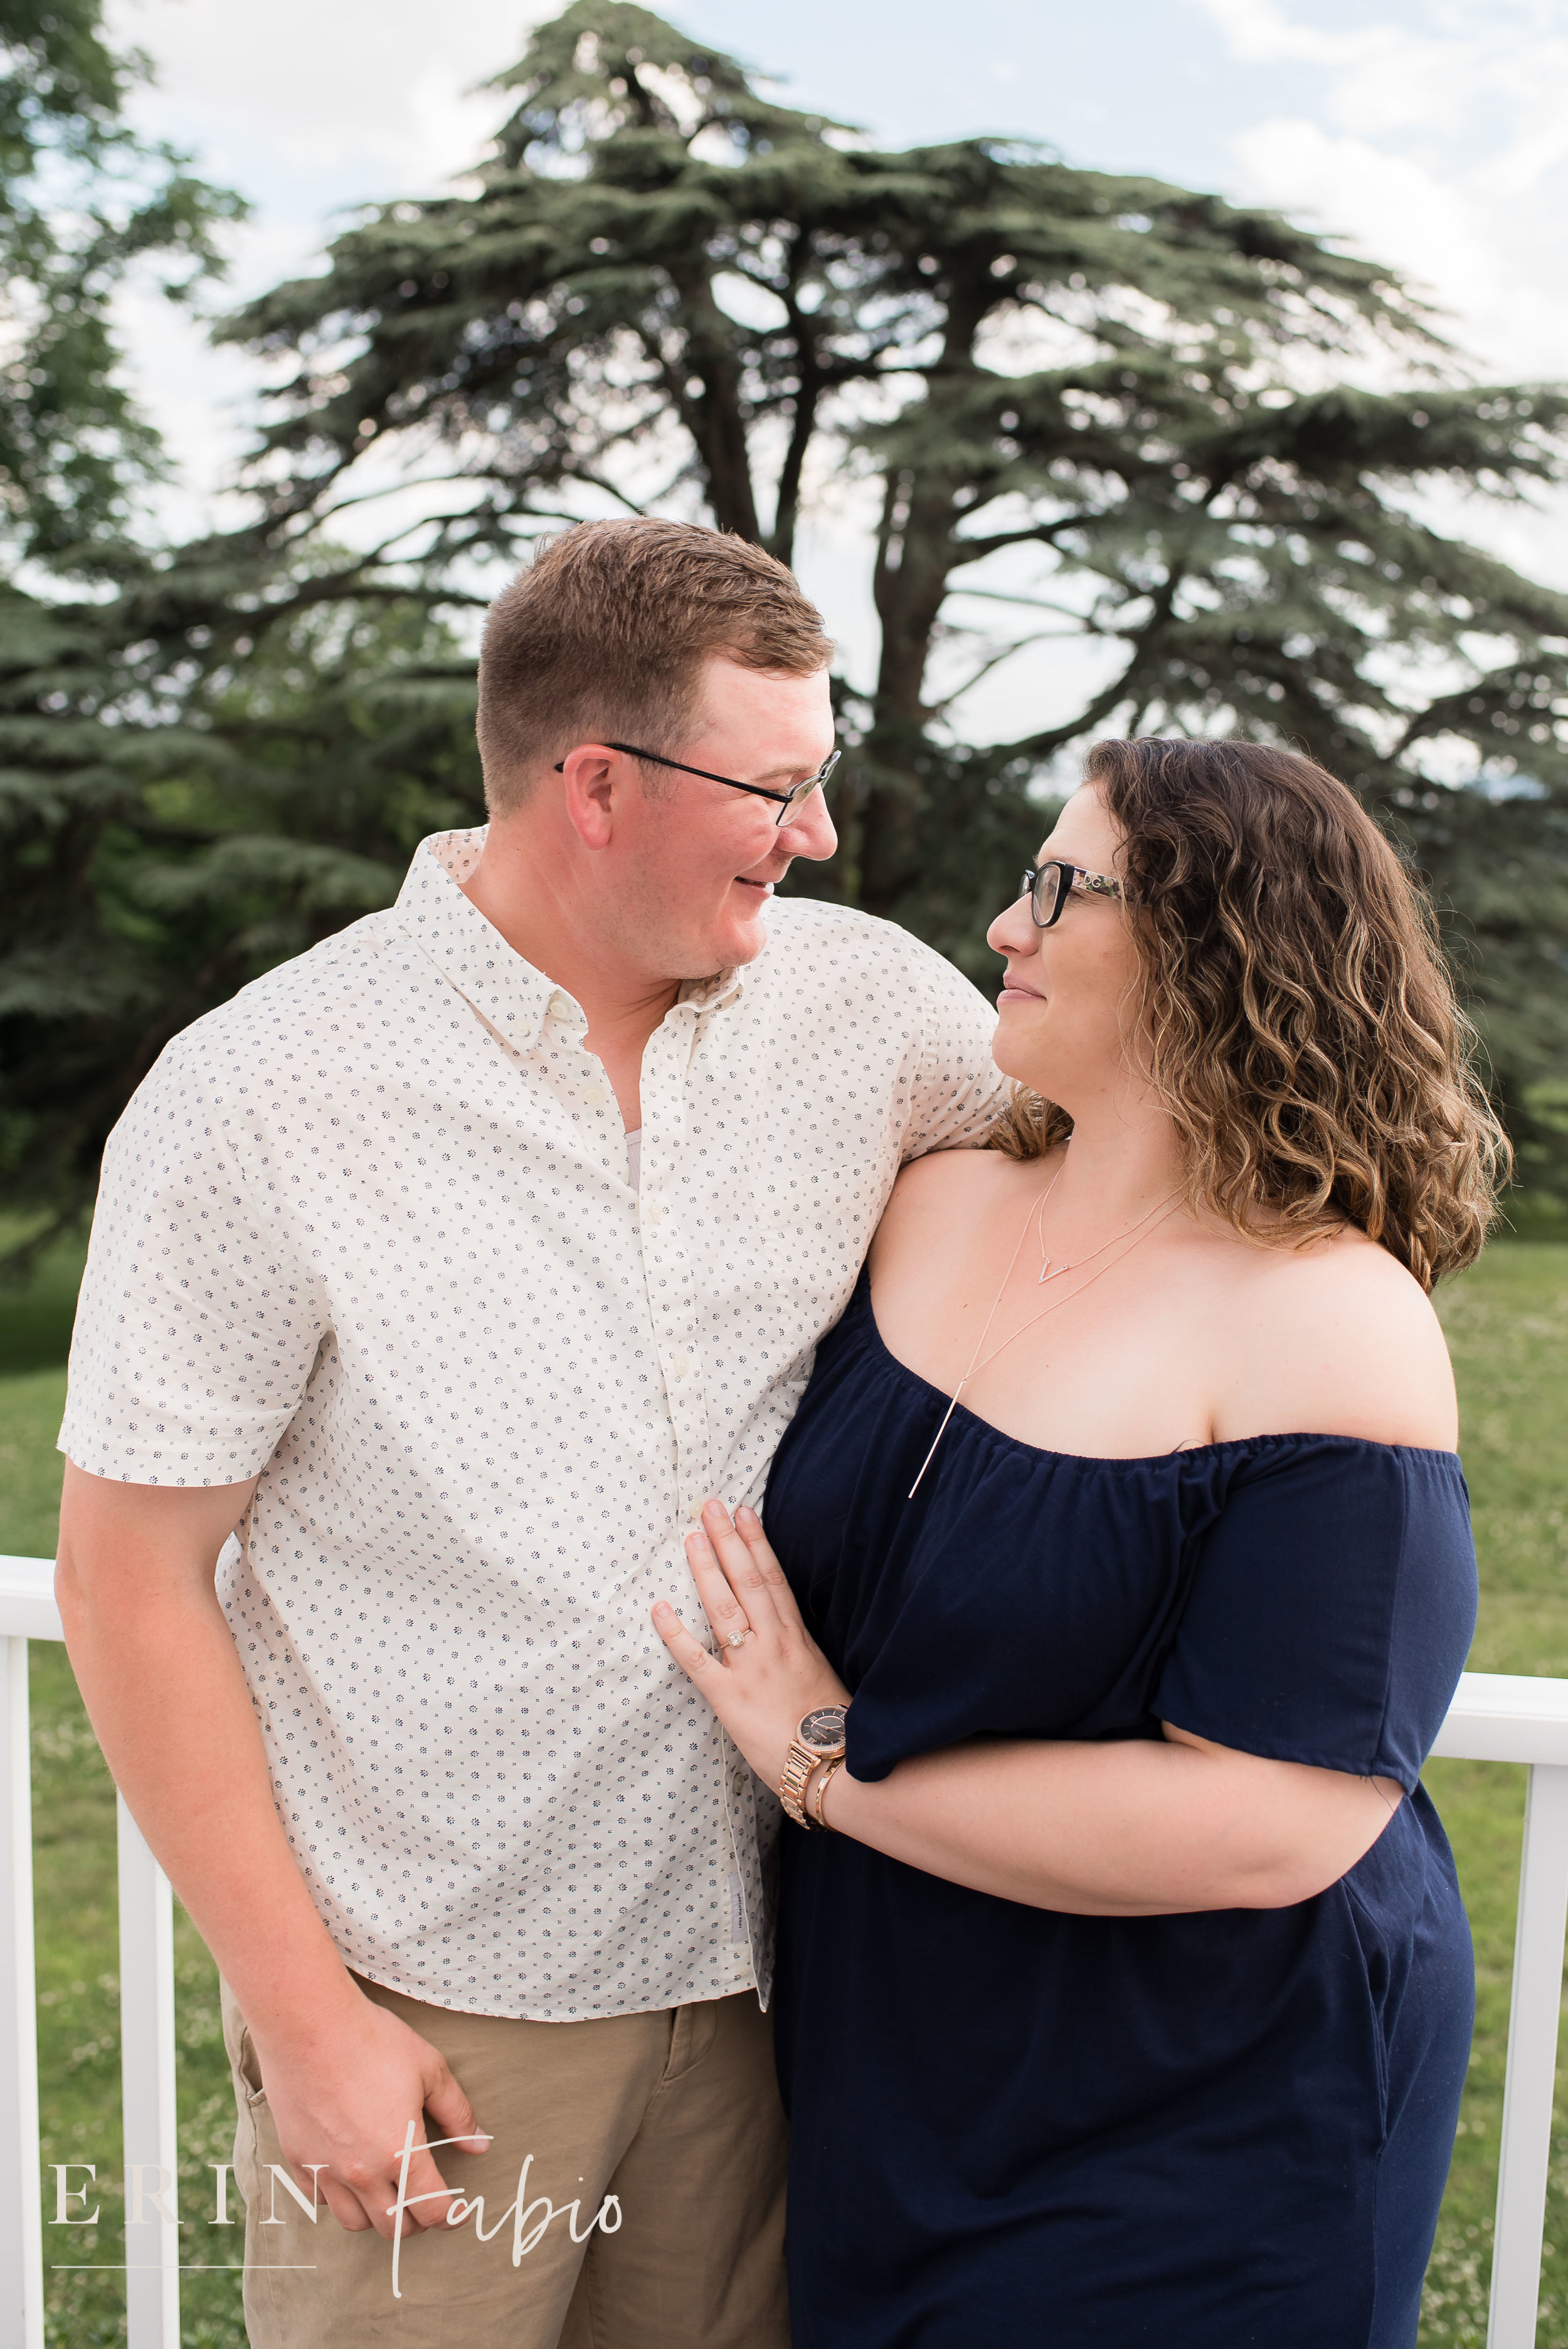 Erin-Fabio-Photography-Brad-Vic-Engagement-June-2018-15.jpg